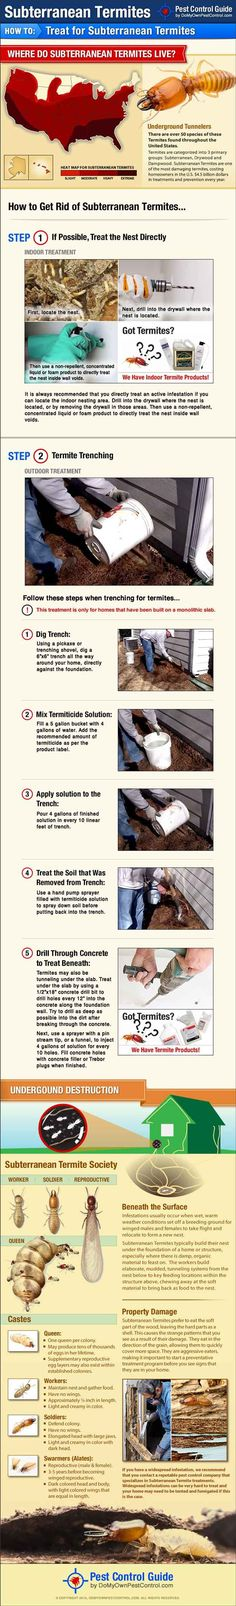 Orange oil termite treatment a safe effective fumigation check out 6 diy termite treatments at httpdiyready6 solutioingenieria Image collections